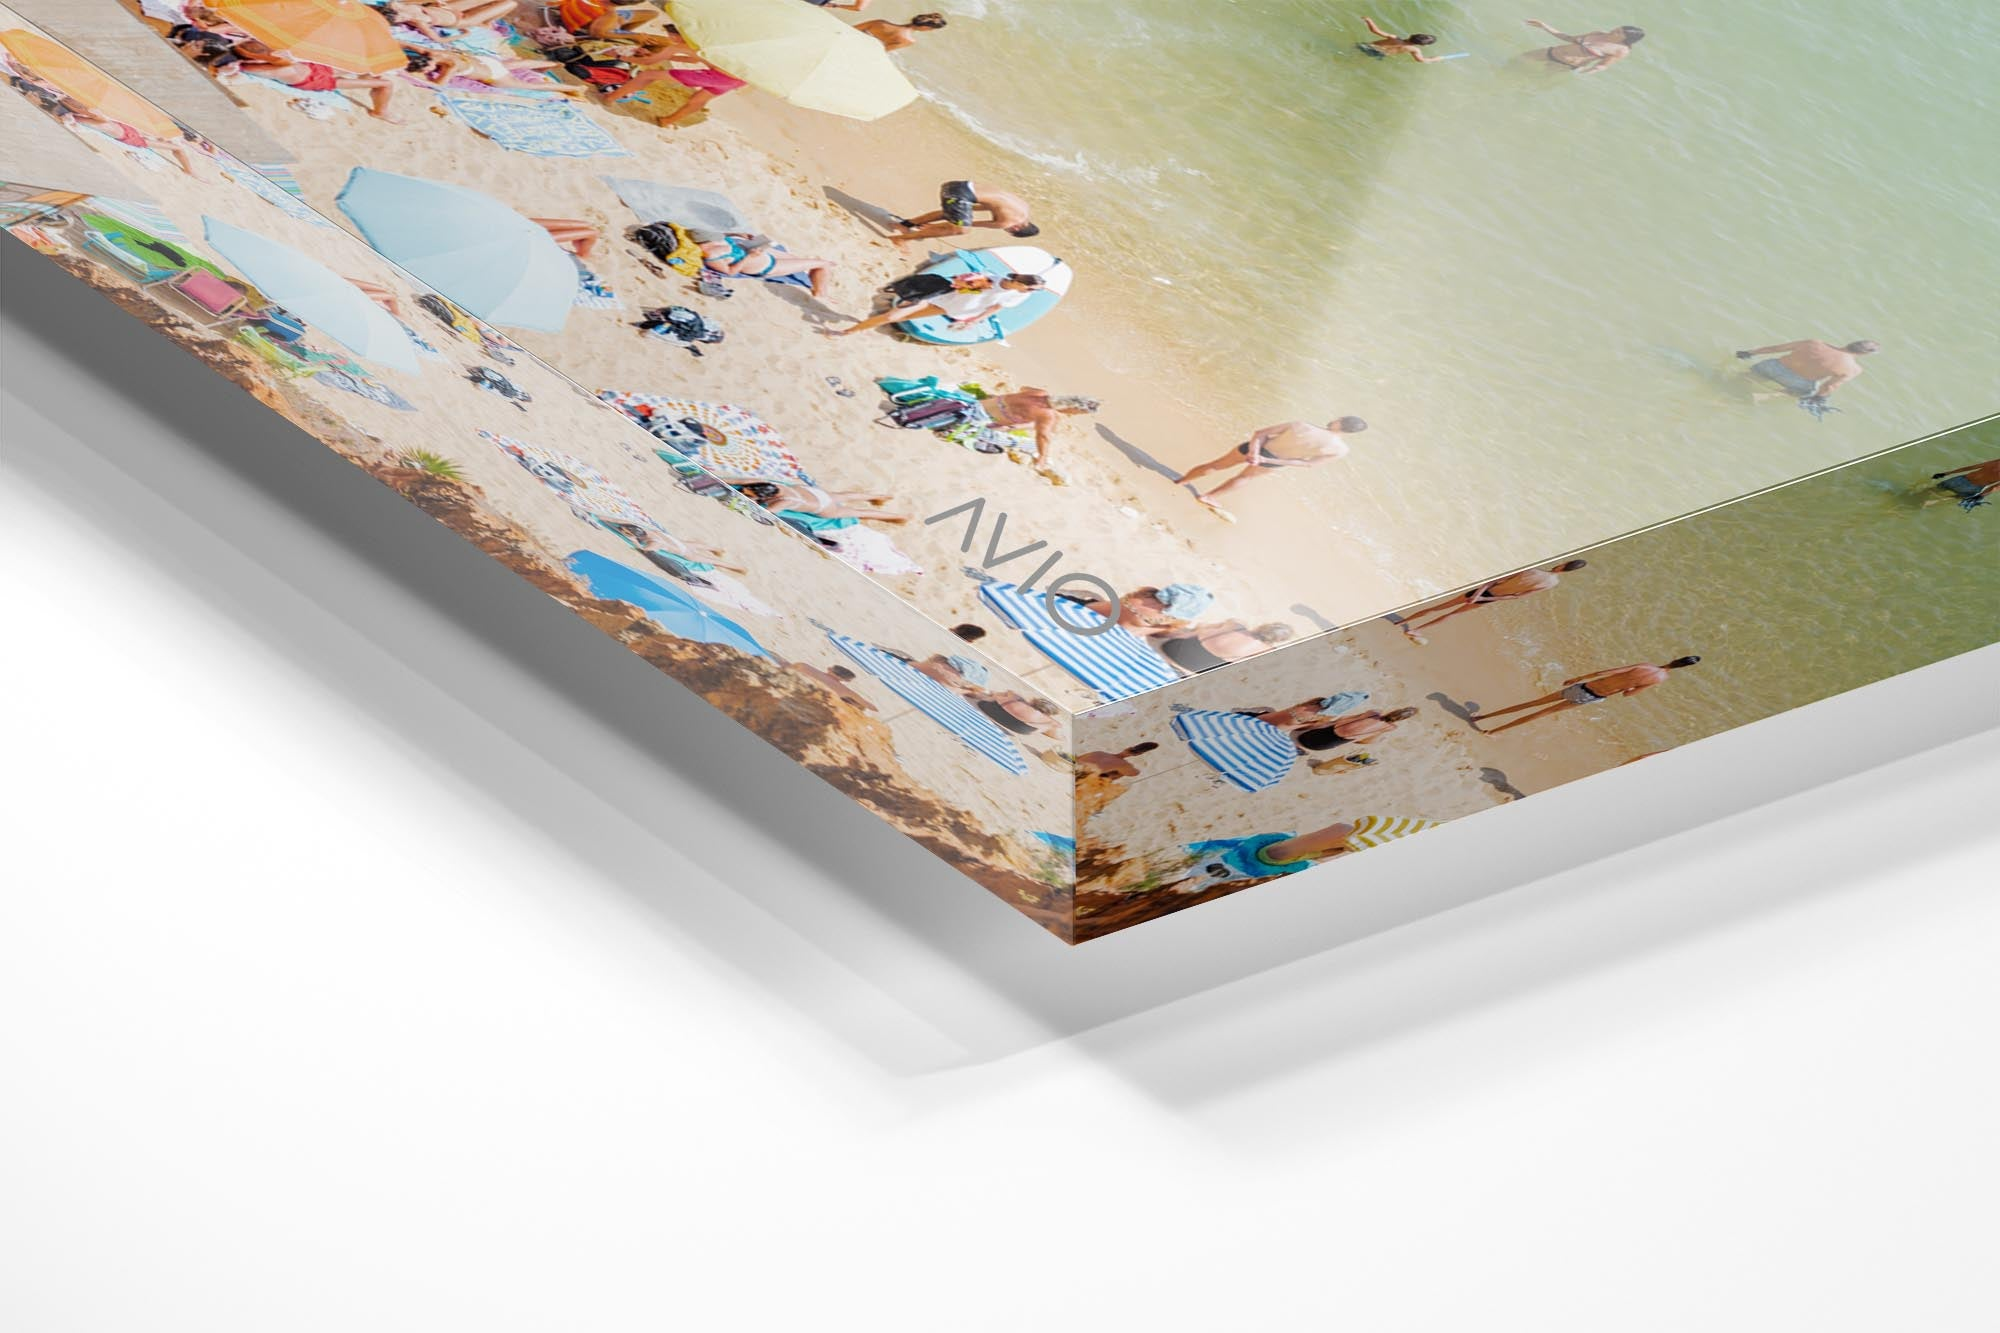 Colorful boards, people, water and sand on Praia do Camilo Lagos in an acrylic/perspex frame